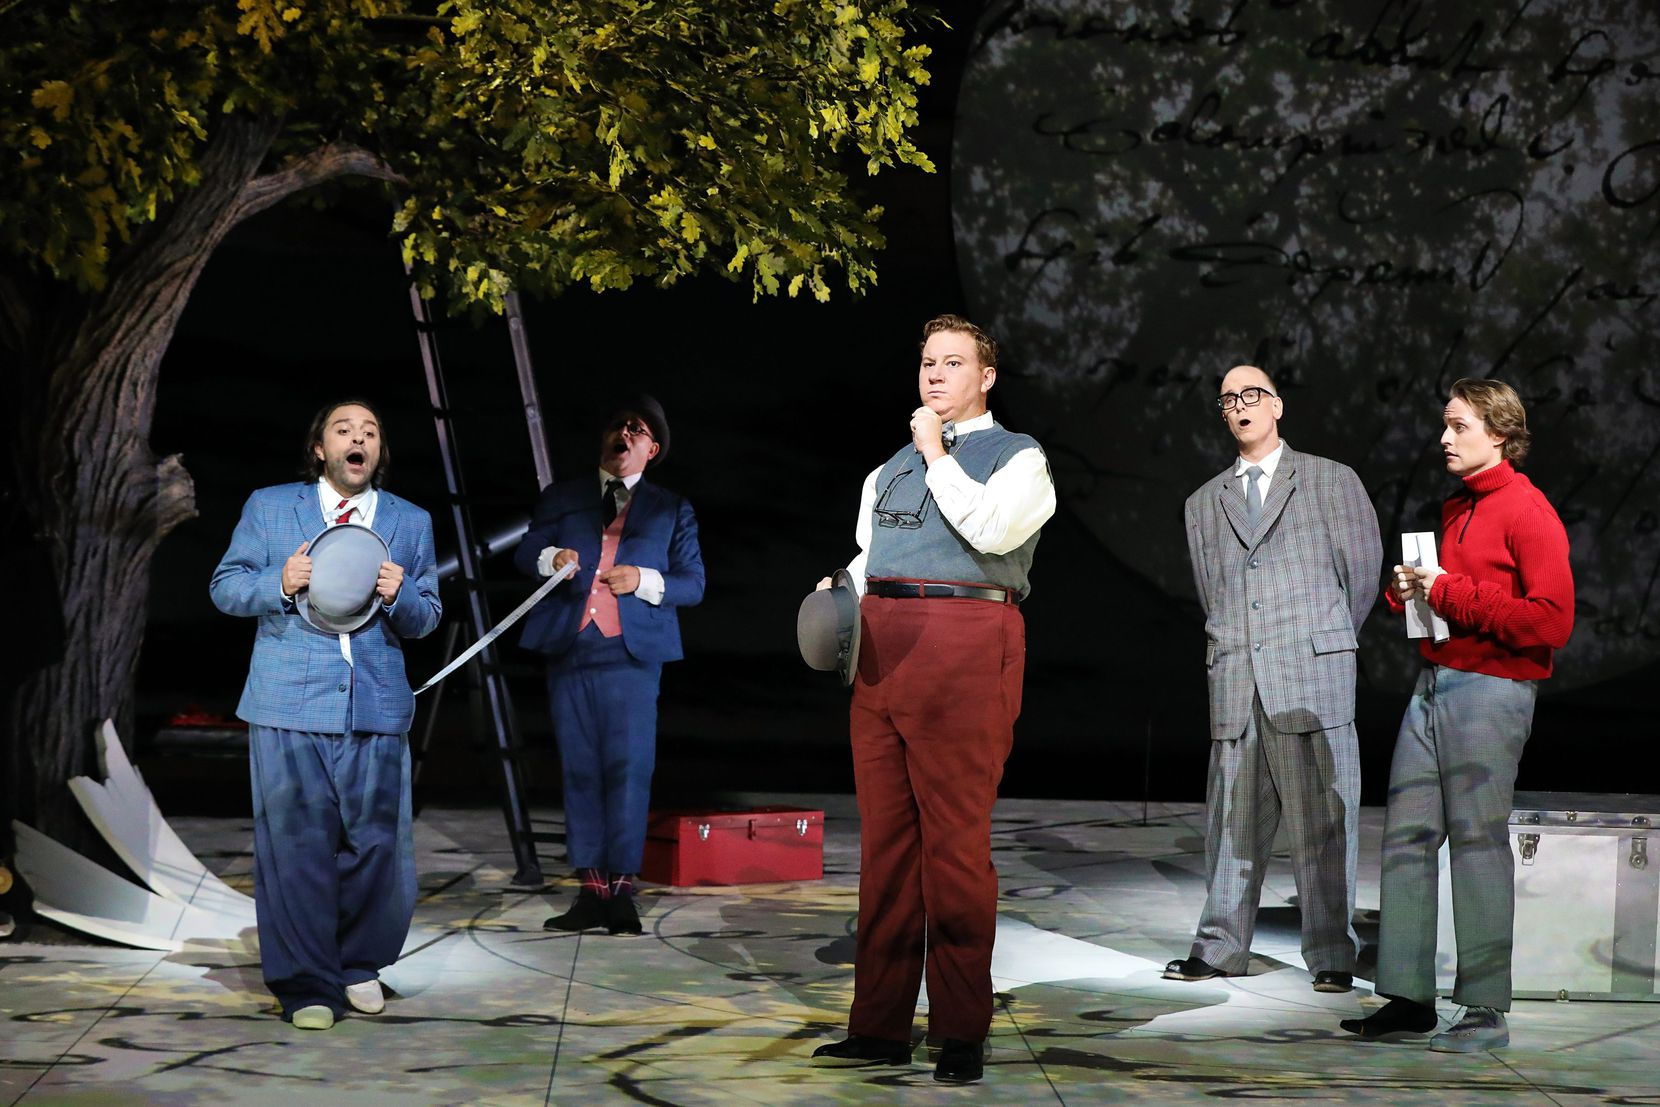 """Matthew Grills (Snout), Patrick Carfizzi (Starveling), Nicholas Brownlee (Bottom), Kevin Burdette (Quince) and Brenton Ryan (Flute) in 2021 Santa Fe Opera production of Britten's """"A Midsummer Night's Dream."""" Photograph by Curtis Brown/Santa Fe Opera."""